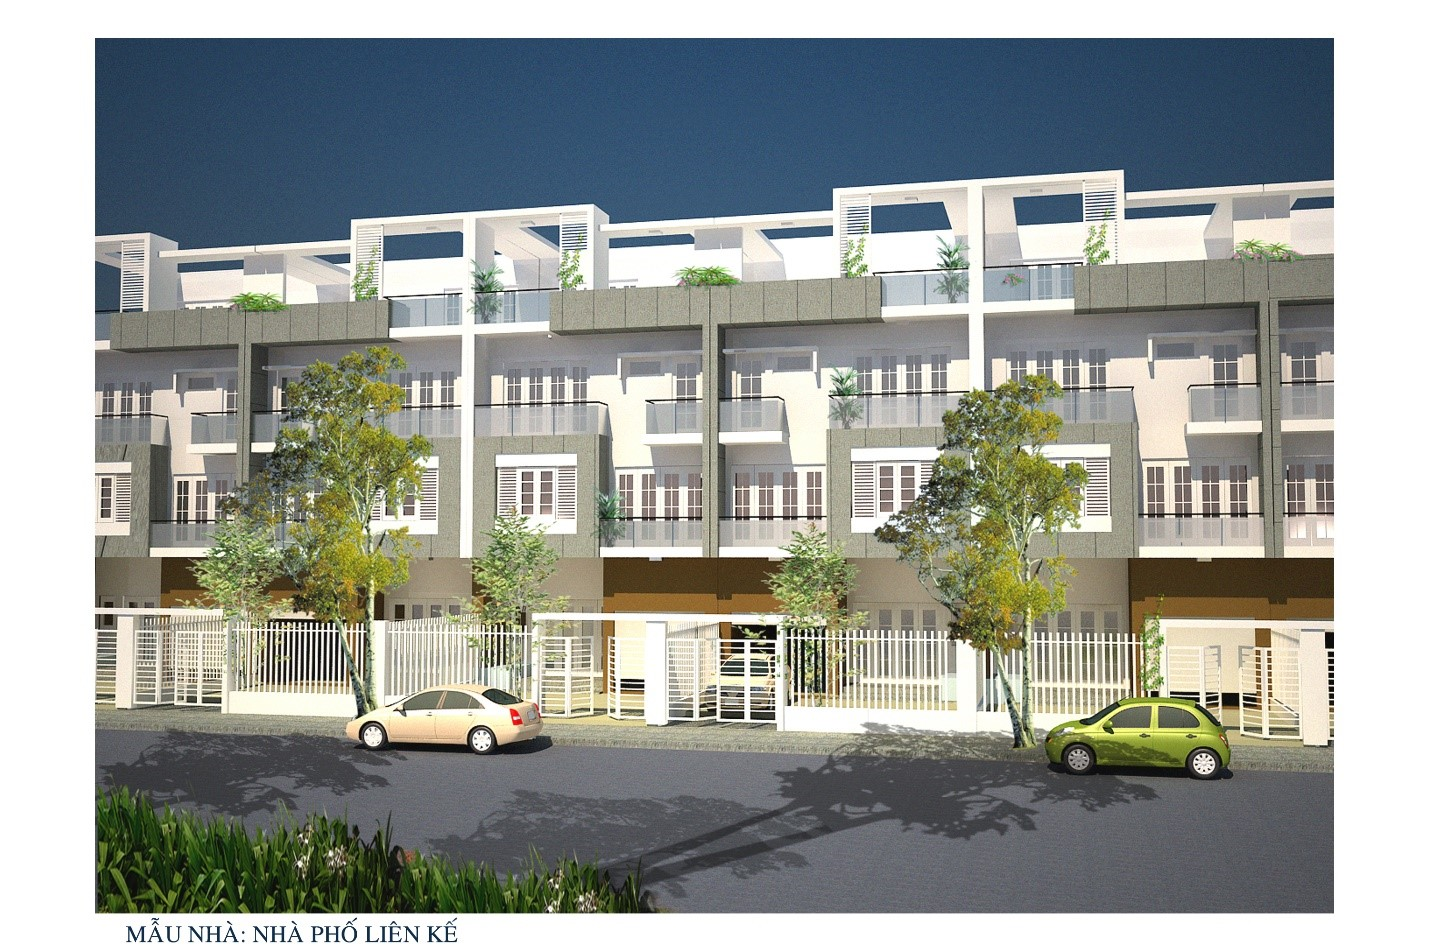 Binh Trung Dong Residential Area Project